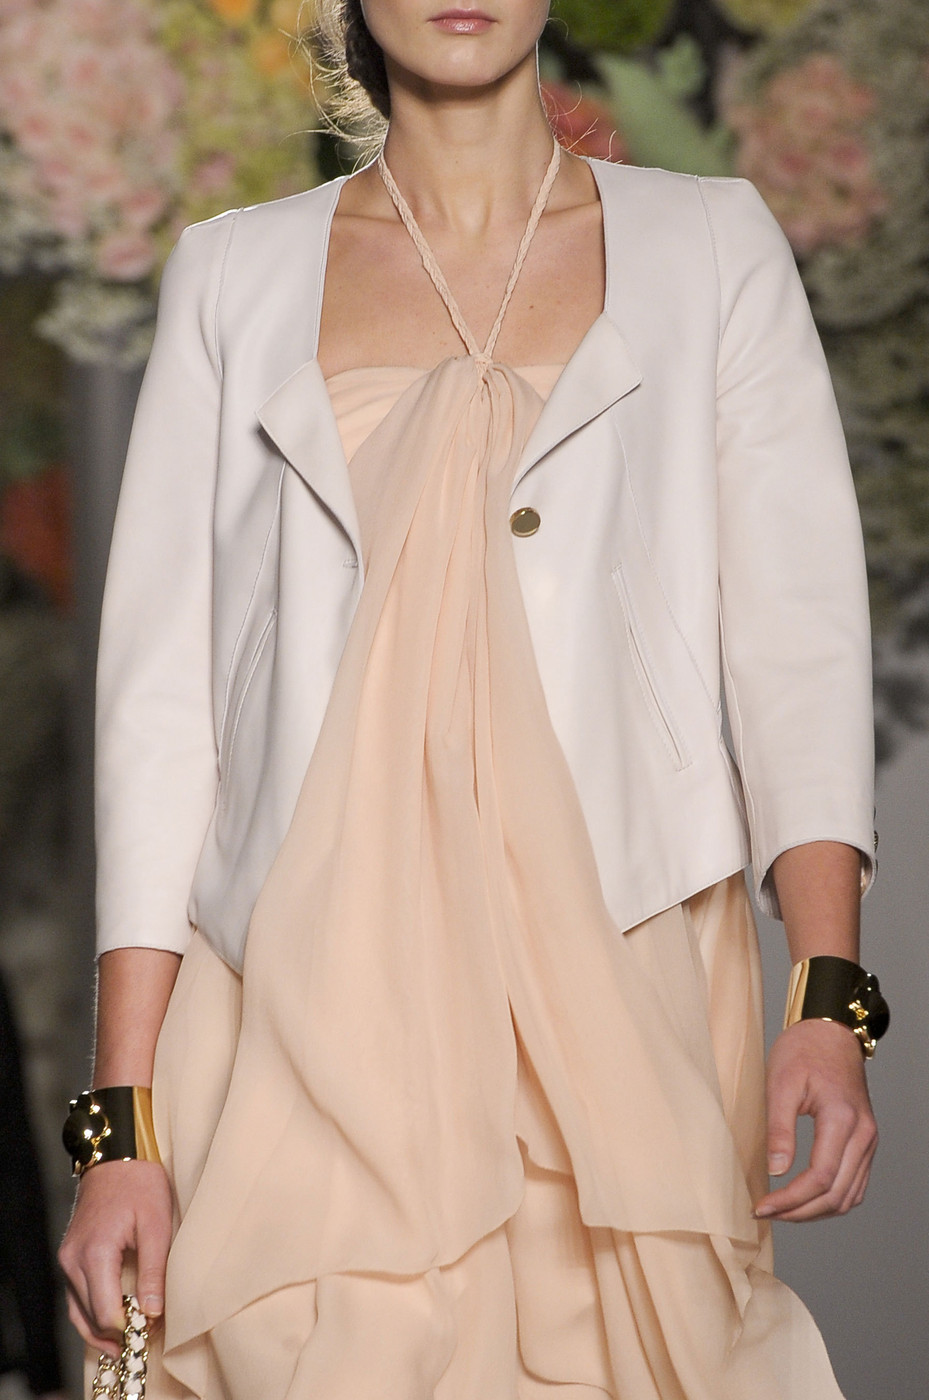 Mulberry Spring/Summer 2013